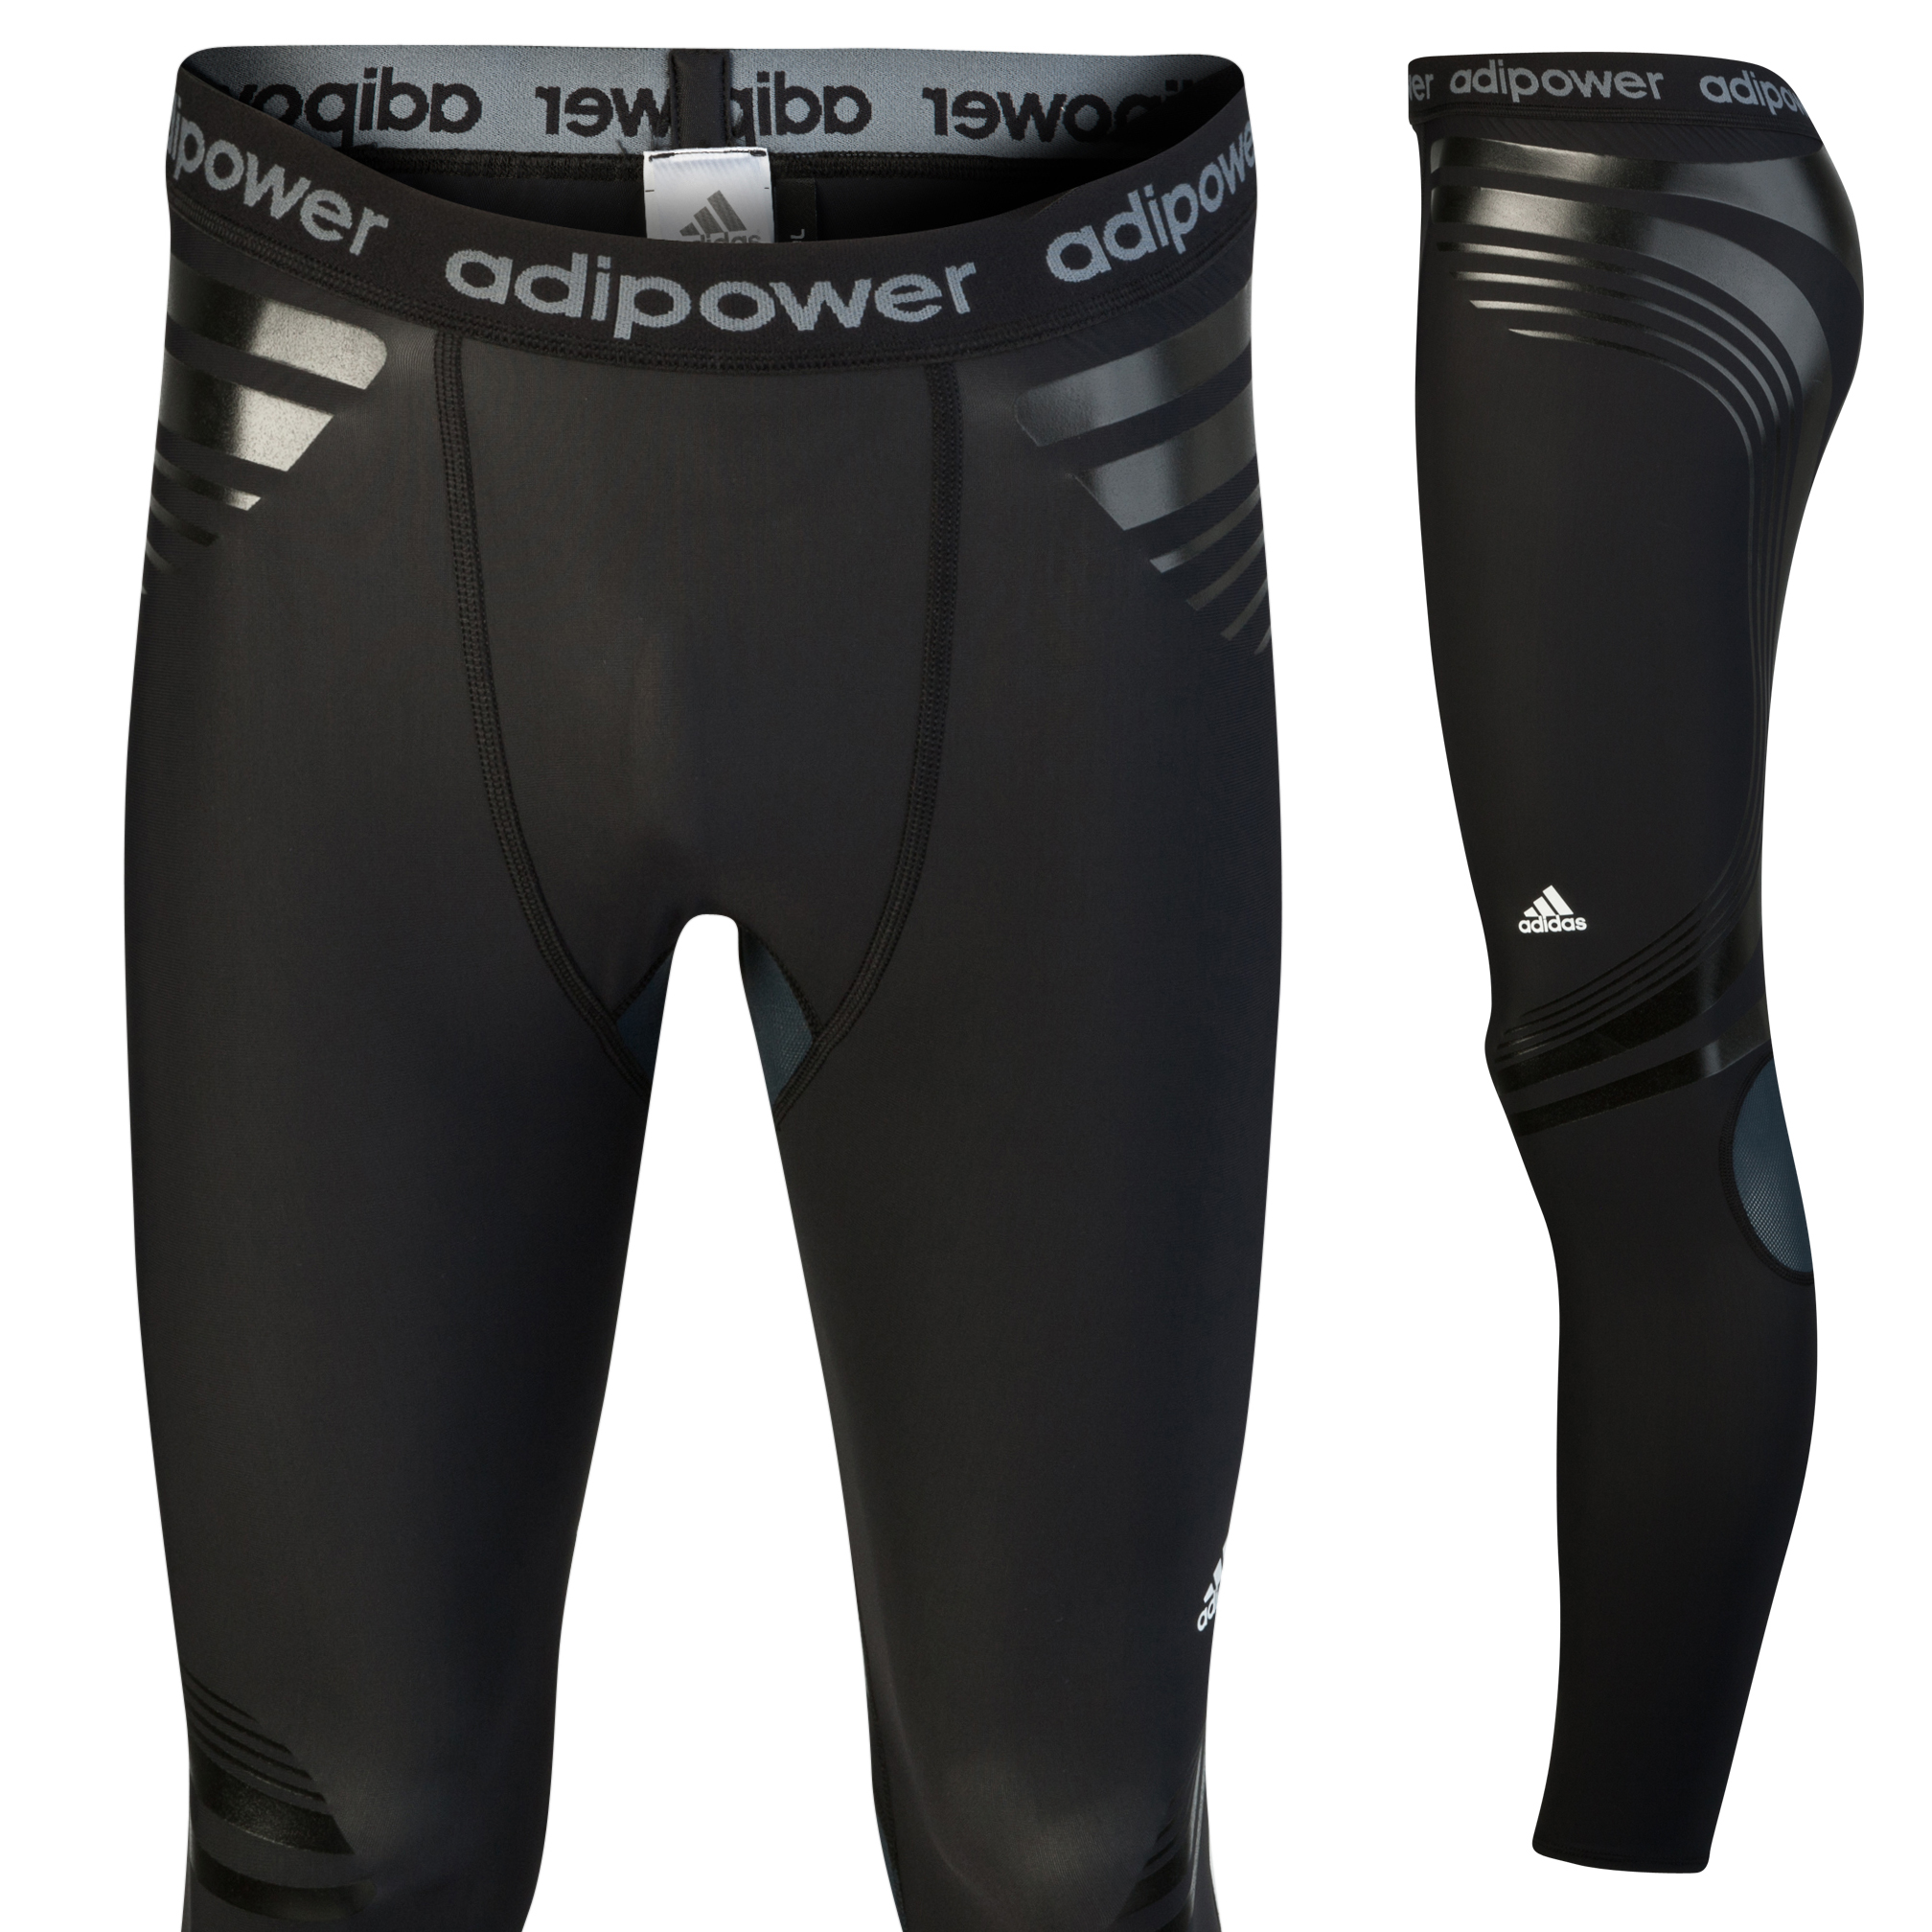 adidas TechFit PowerWeb Baselayer Tights - Black